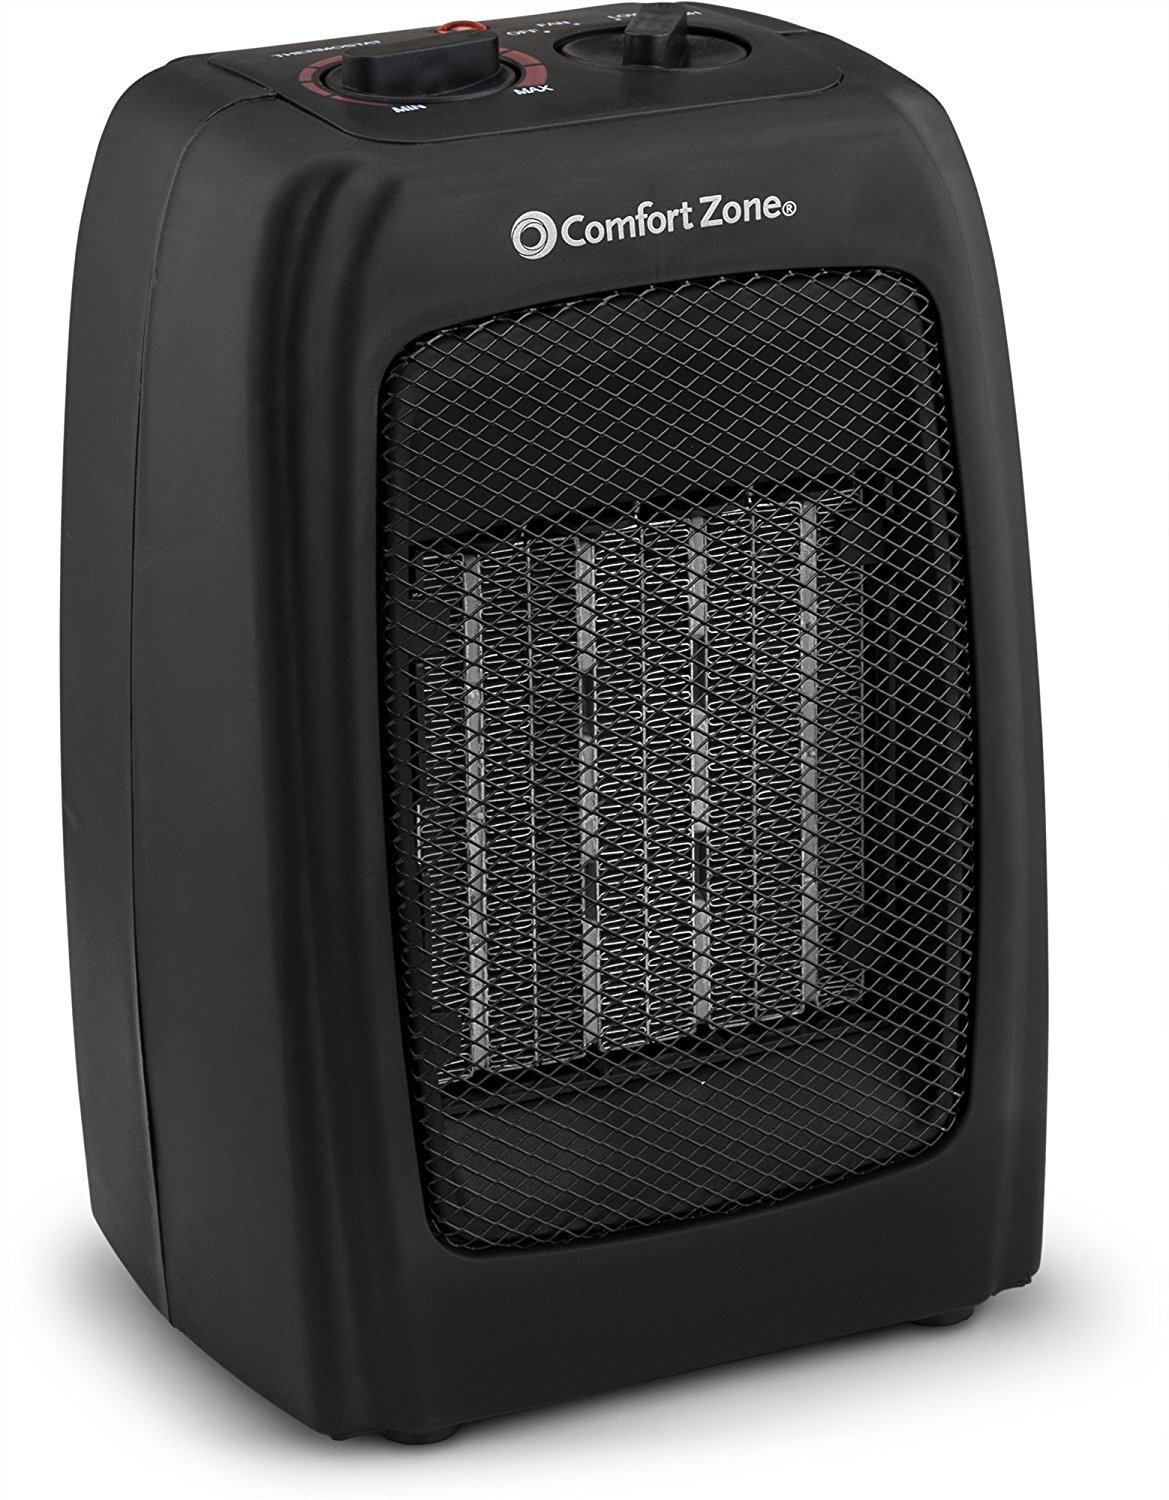 BOVADO USA Portable 166648 Ceramic Space Heater, Personal Warming Fan with Adjustable Thermostat